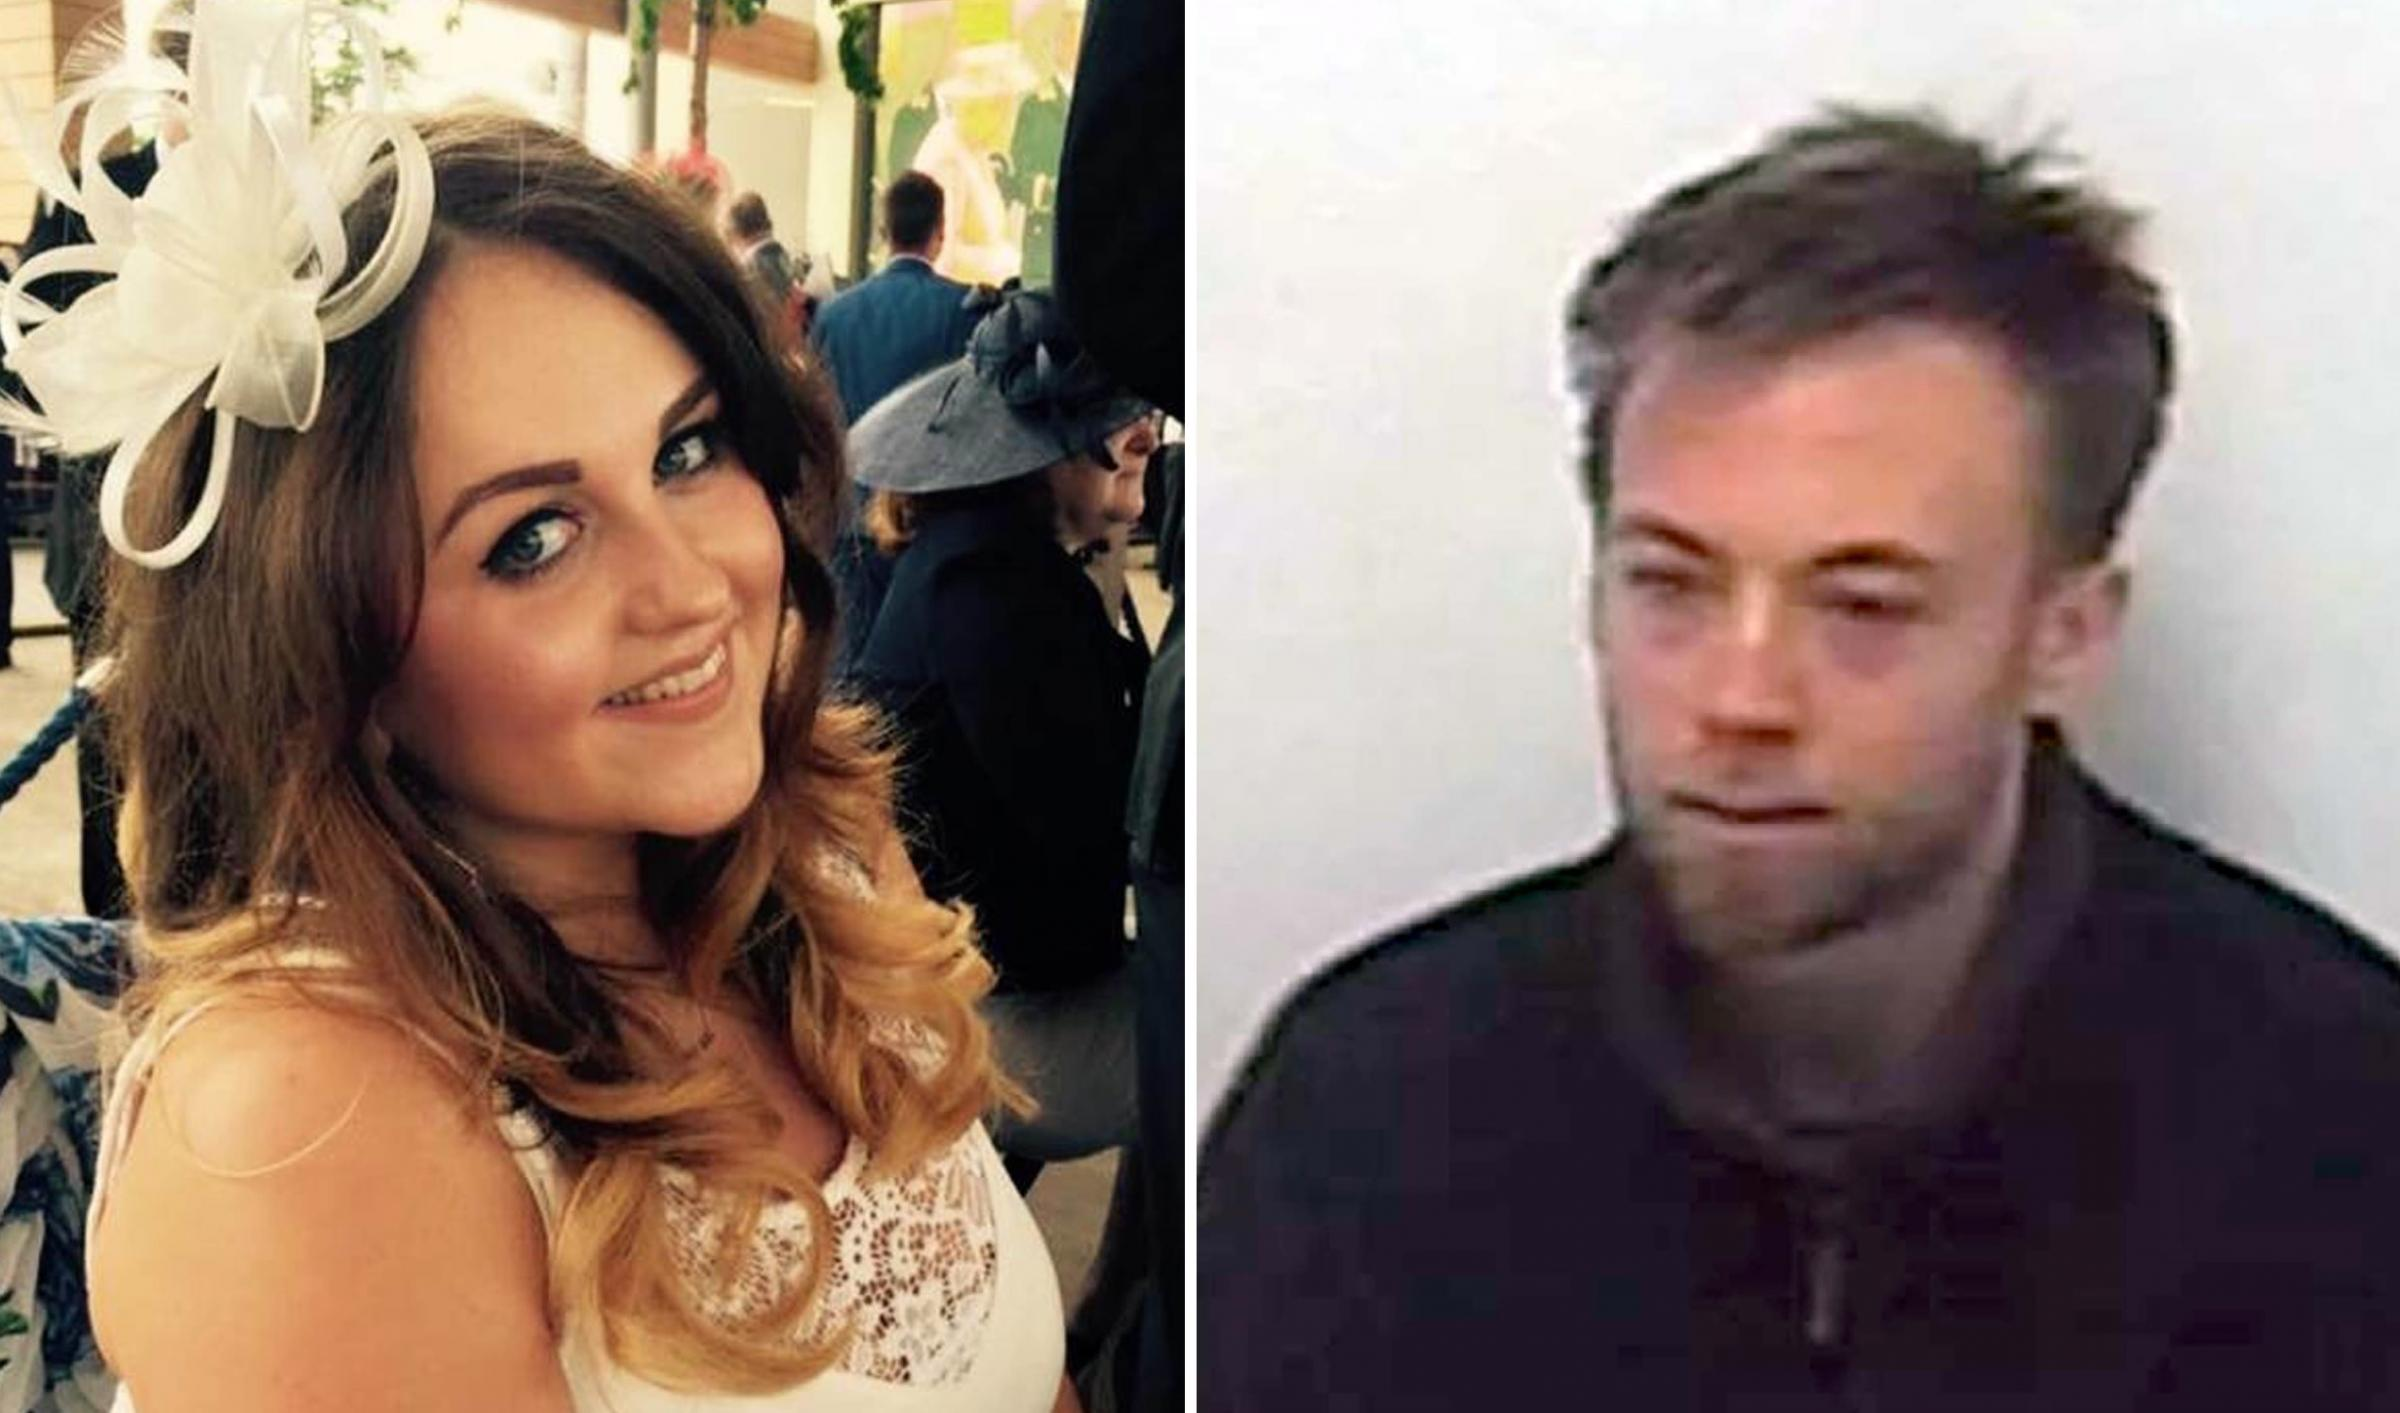 Charlotte Brown died after a speedboat in which she was travelling with Jack 